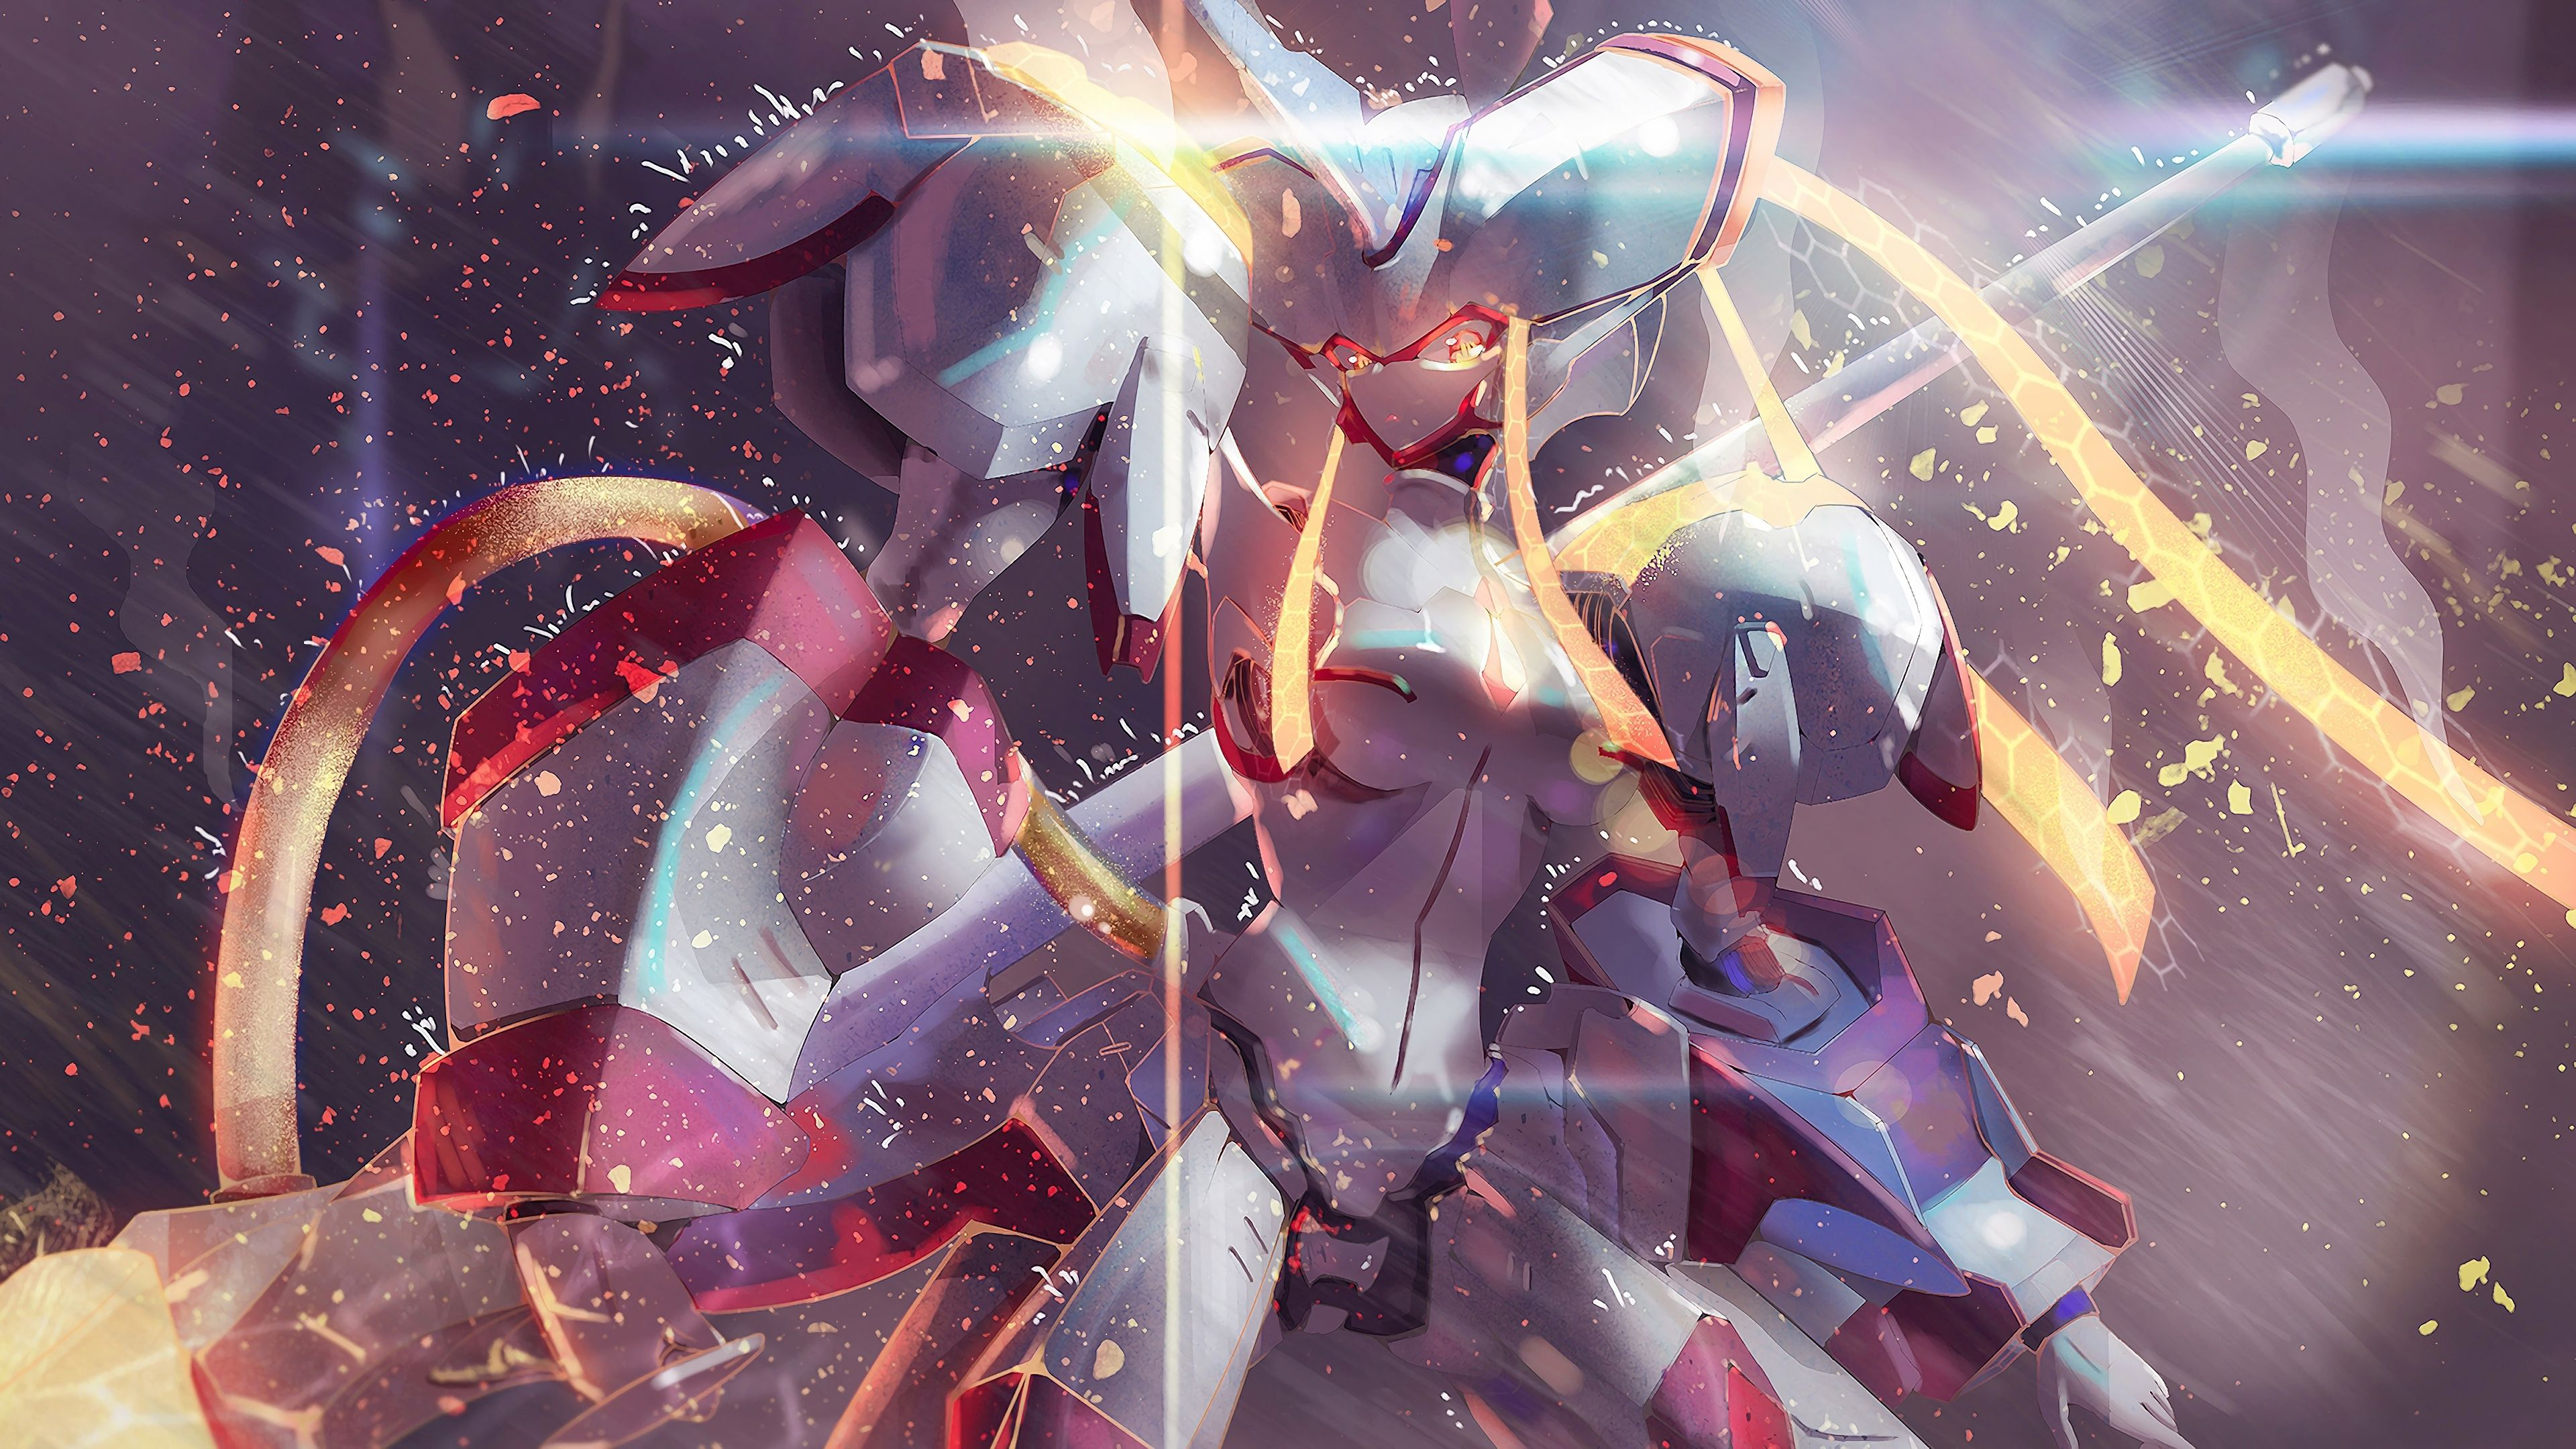 Strelizia Darling In The Franxx Anime Mecha 3840x2160